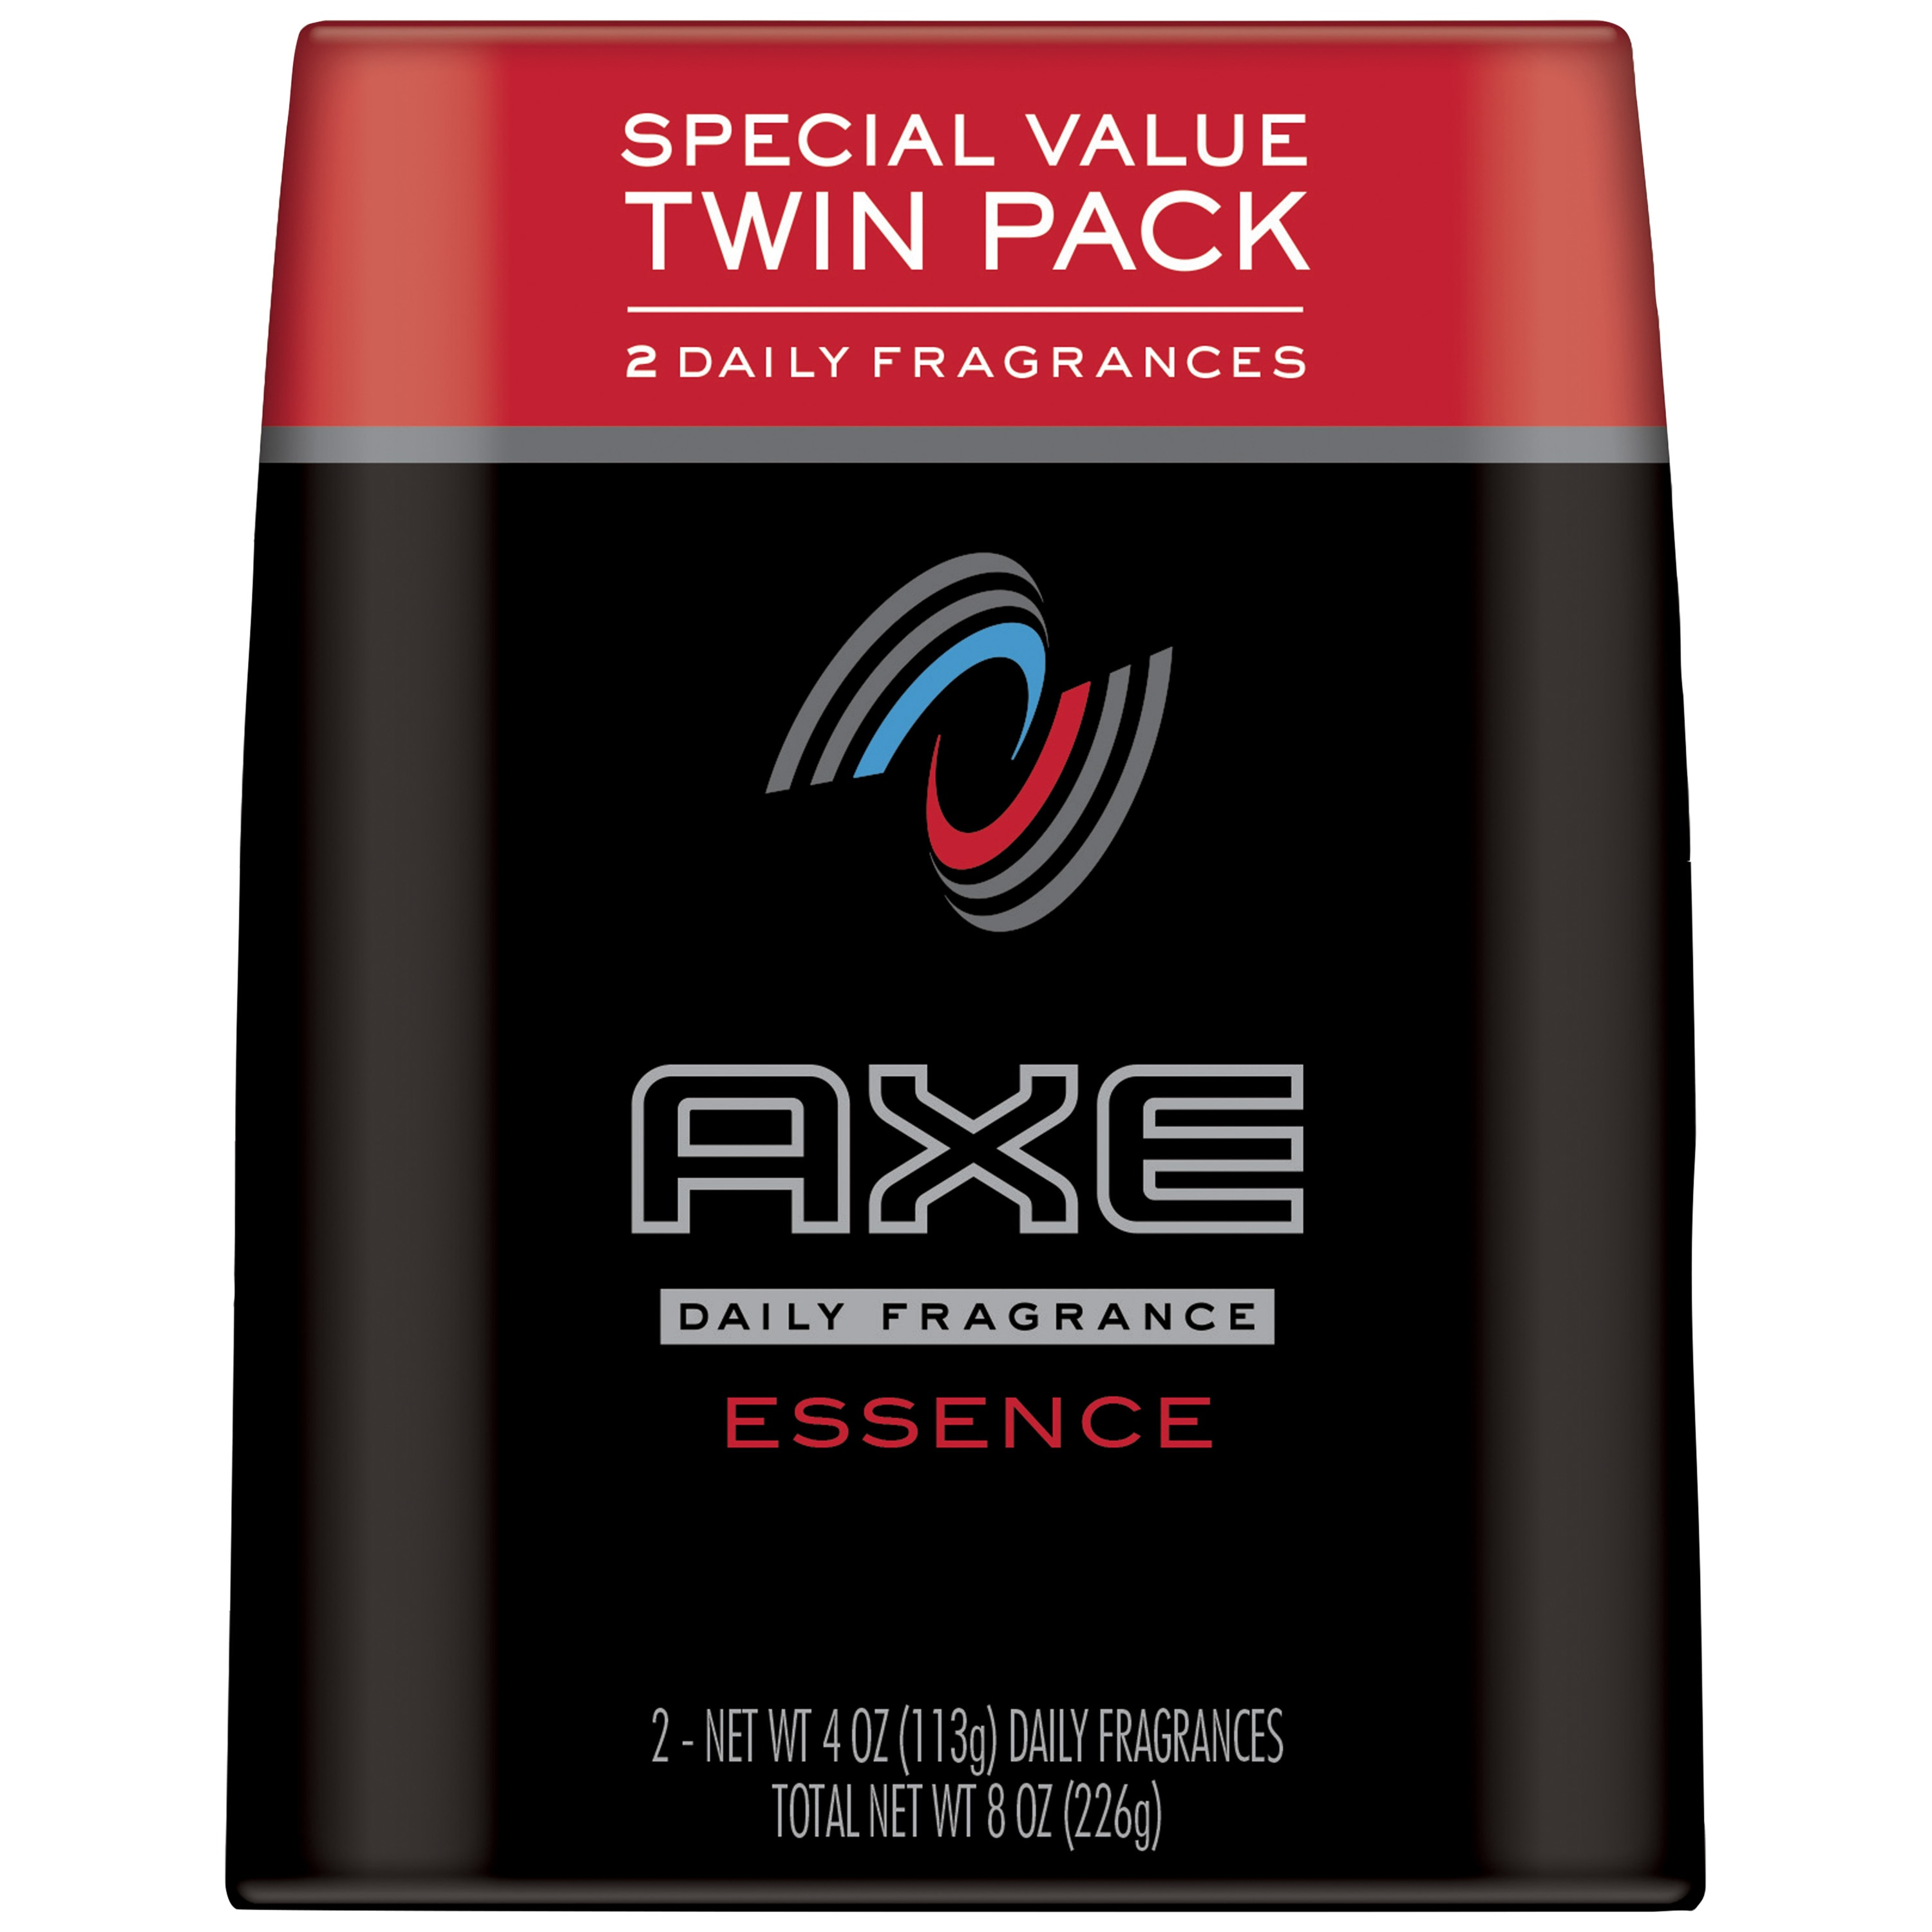 AXE Body Spray for Men Essence 4 oz, Twin Pack